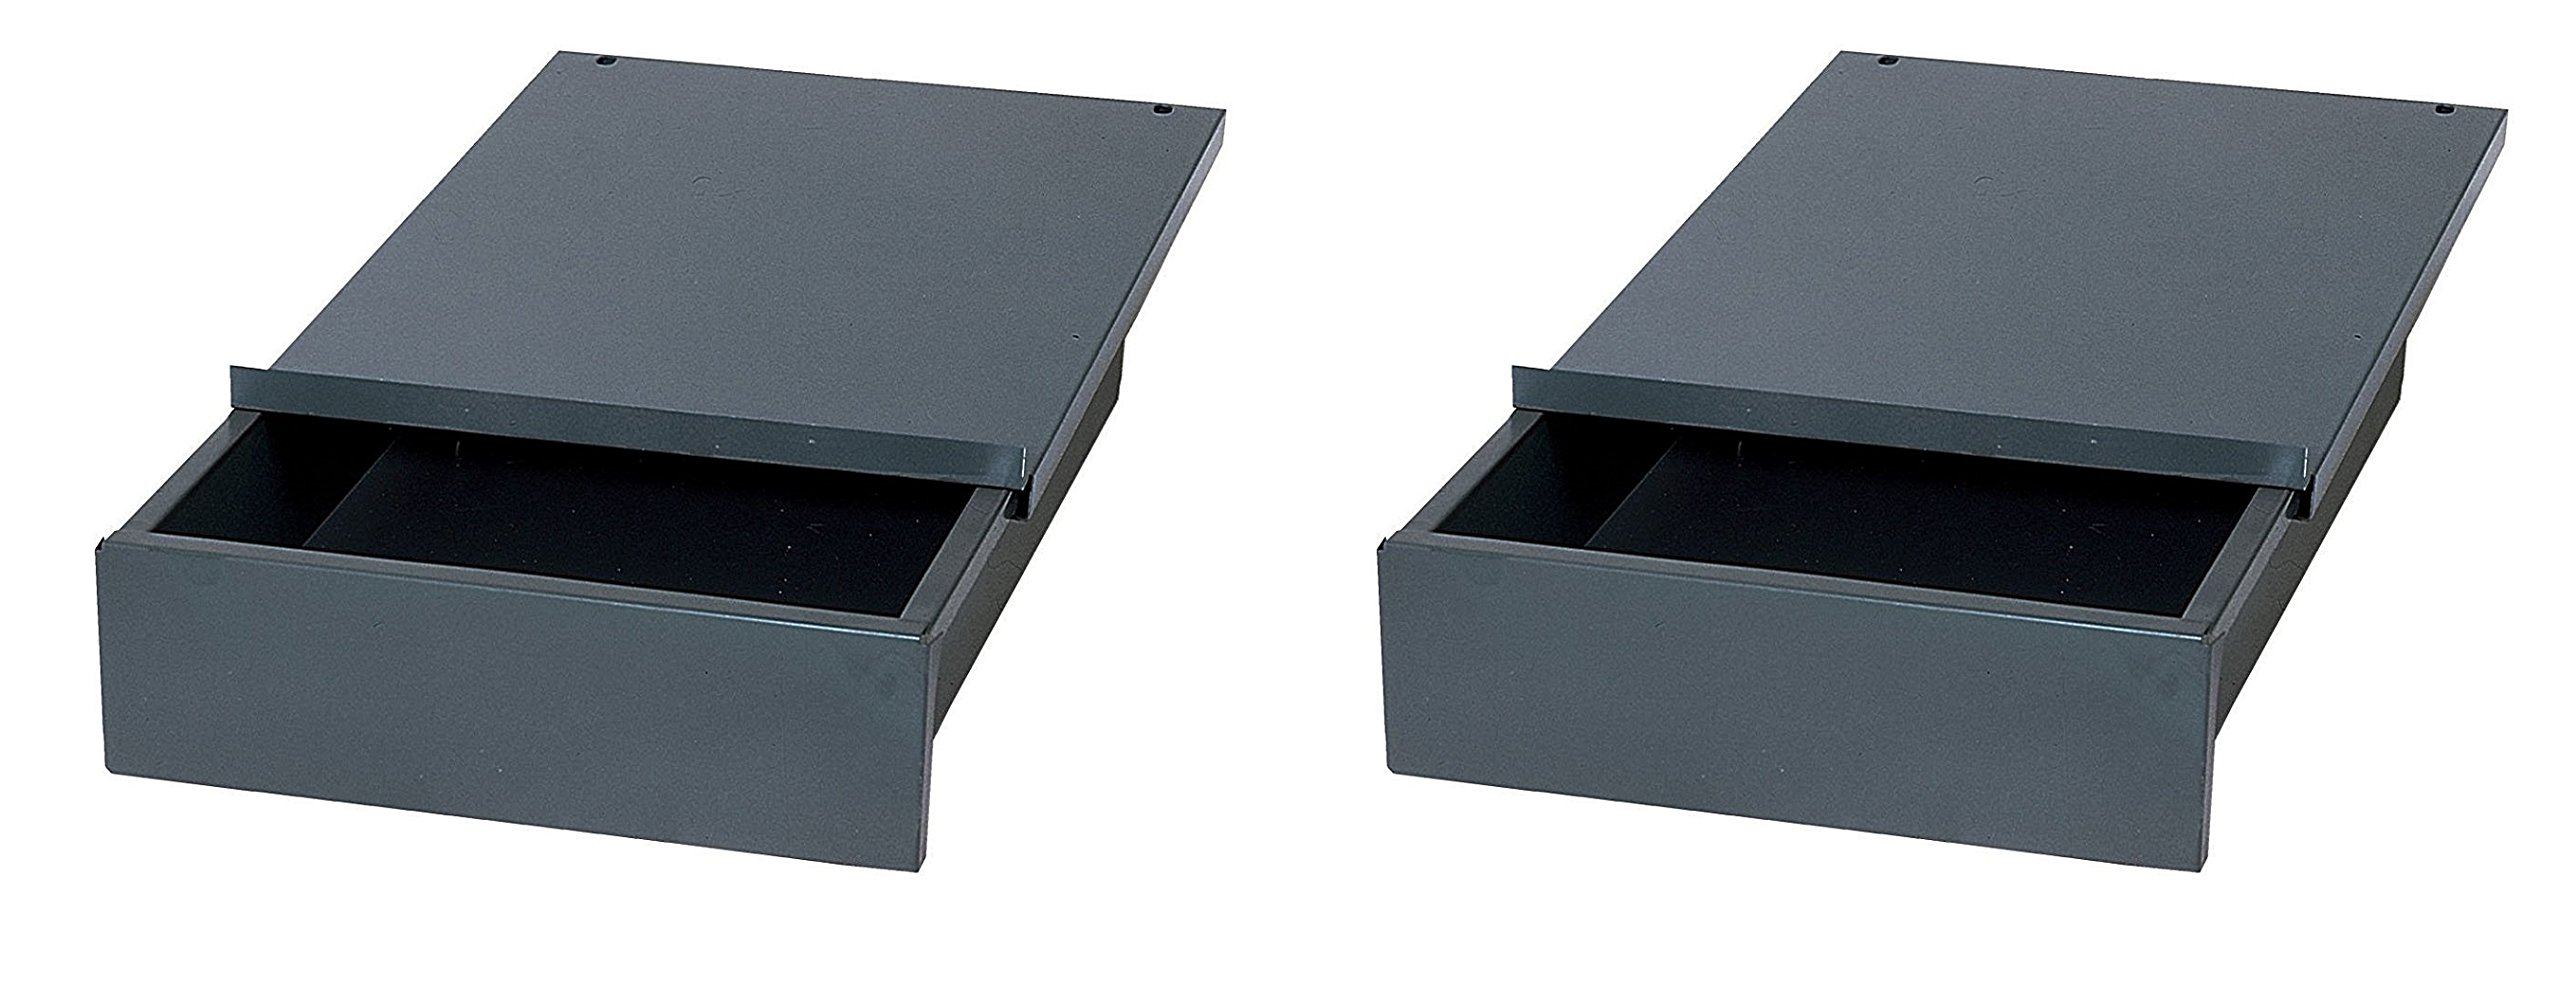 Edsal WD1218 Industrial Gray Steel Bench Drawer, 4'' Height x 12'' Width x 18'' Depth (Pack of 2)